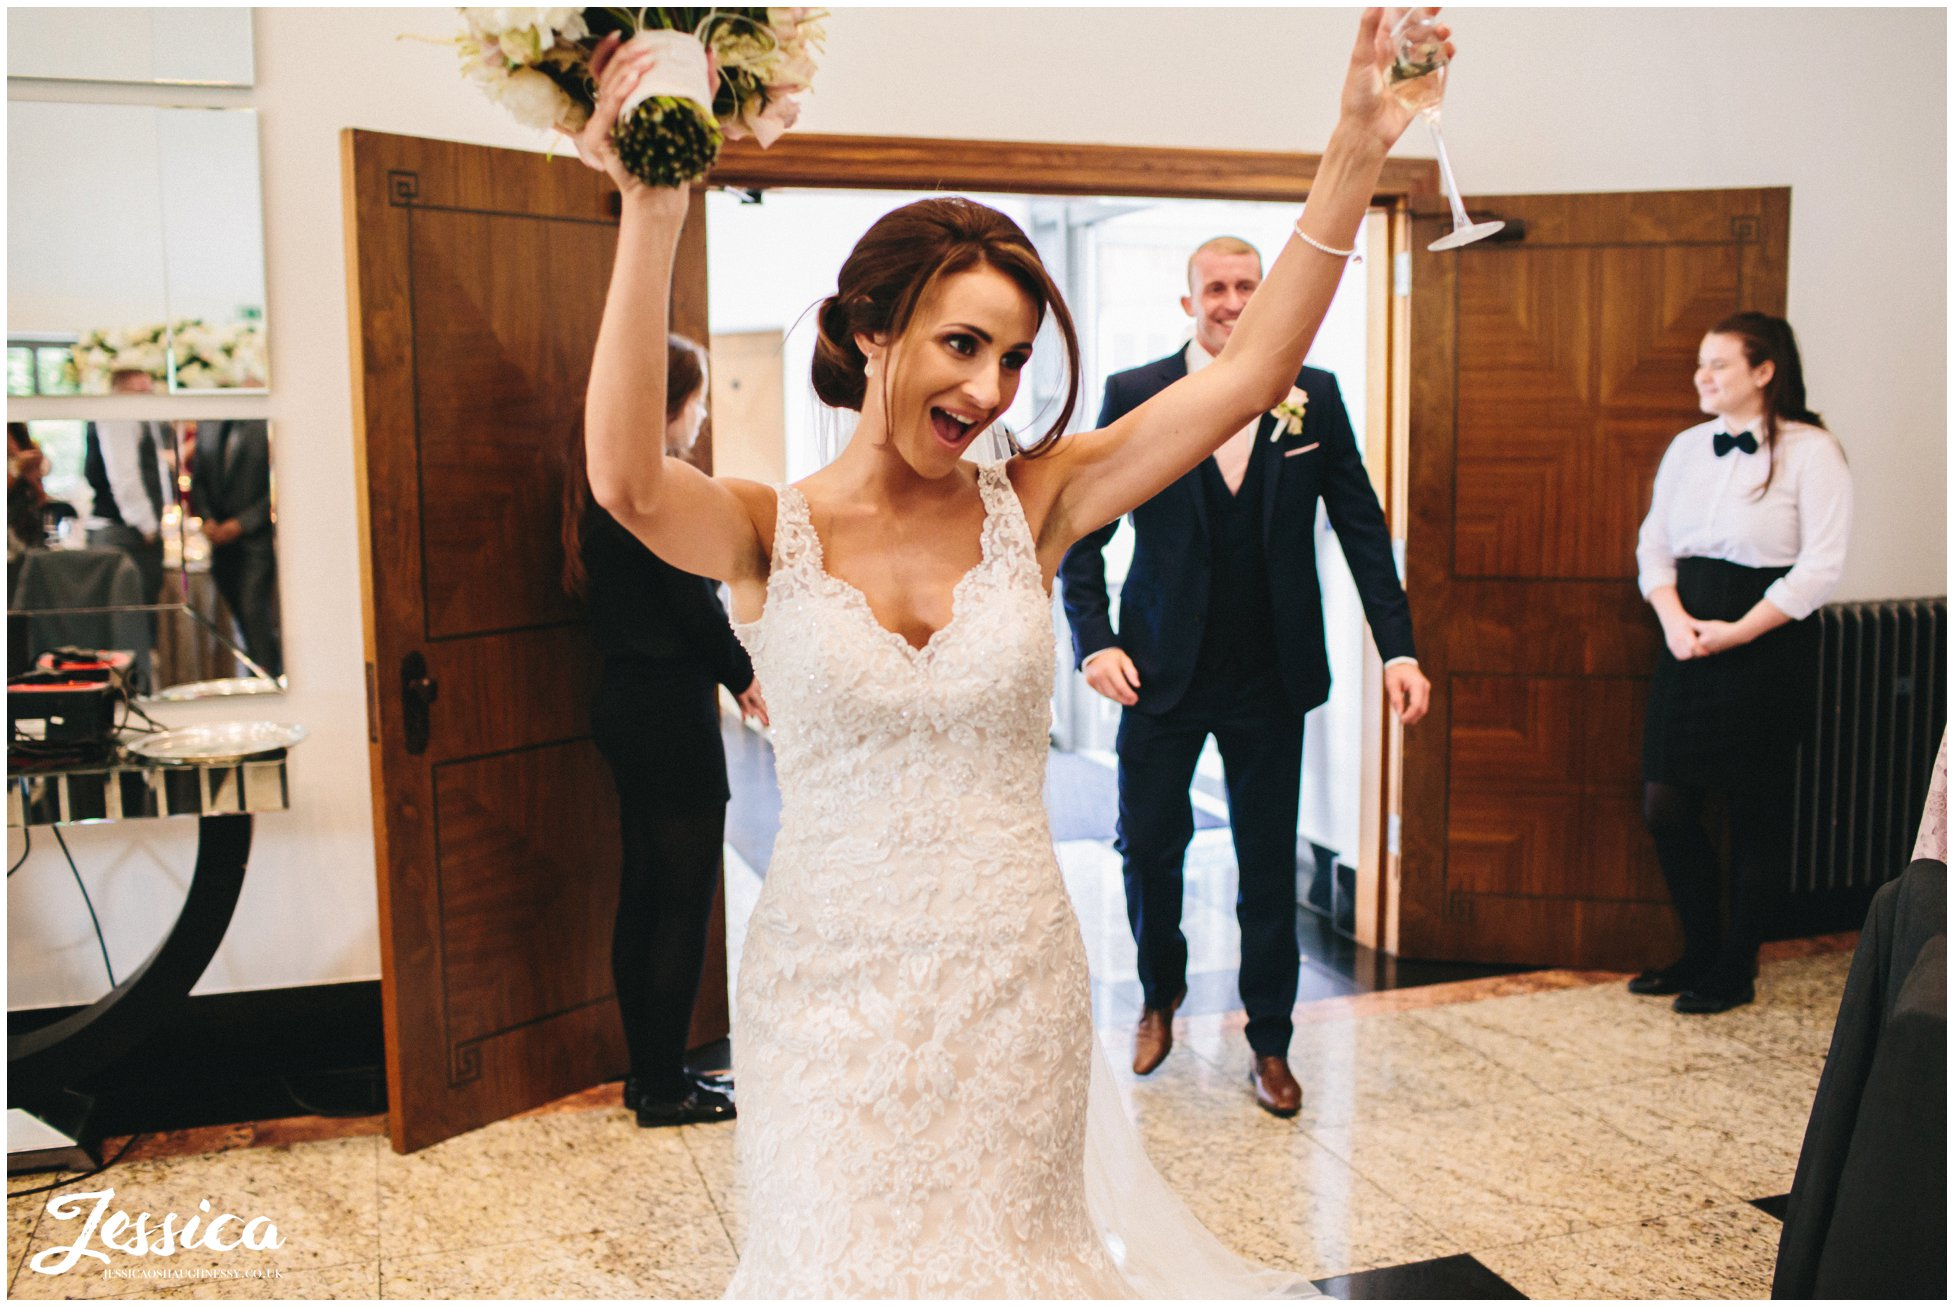 bride dances as she enters the room for the wedding breakfast